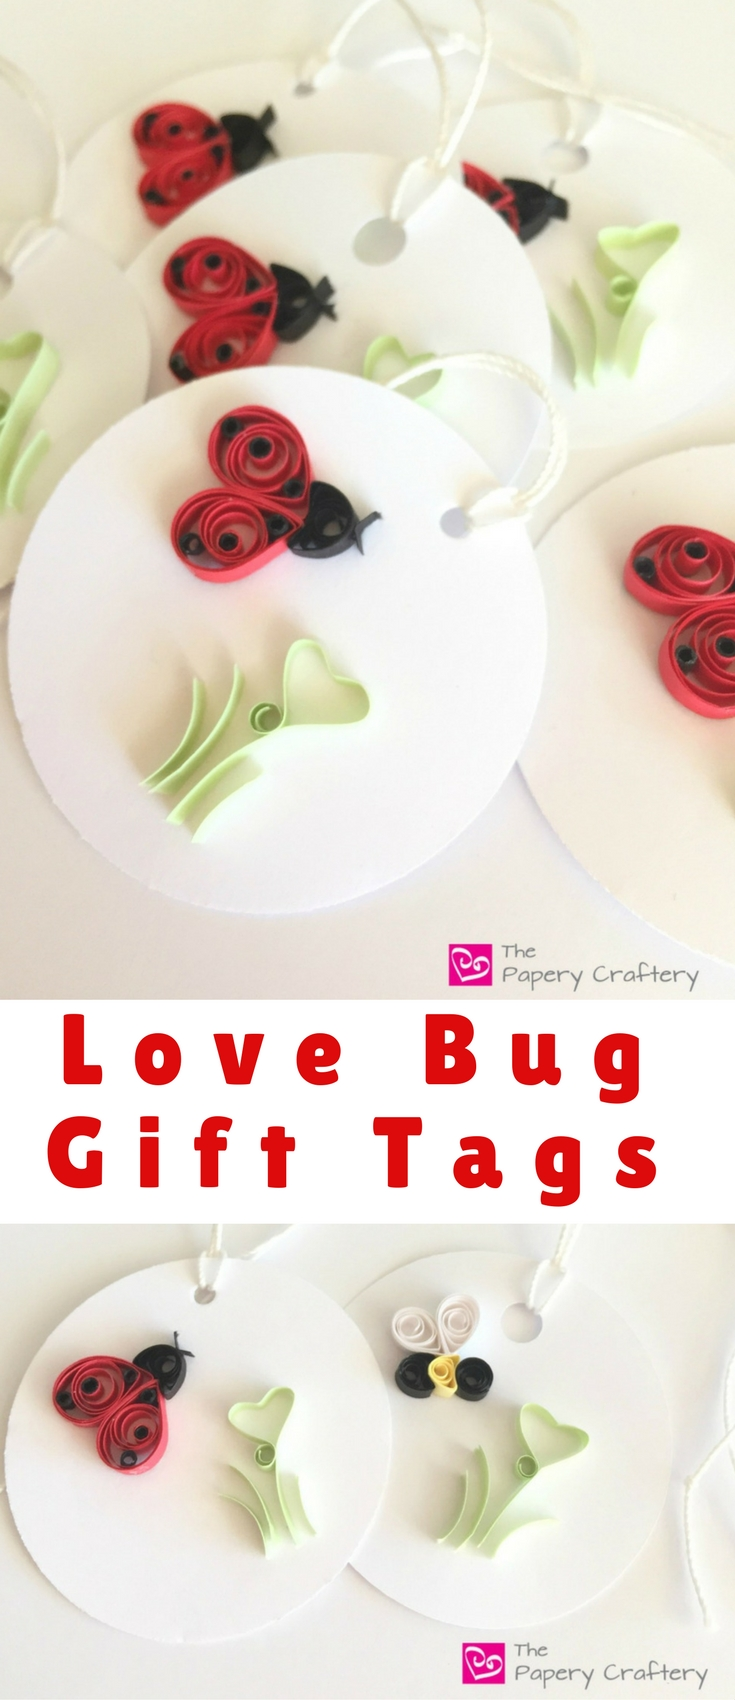 I'm a huge fan of Valentine's Day. I love that there's a whole day devoted to love and hearts and so I decided I would mash up both parts of the theme, love and bugs, to create some ladybug and bumblebee Love Bug Gift Tags.